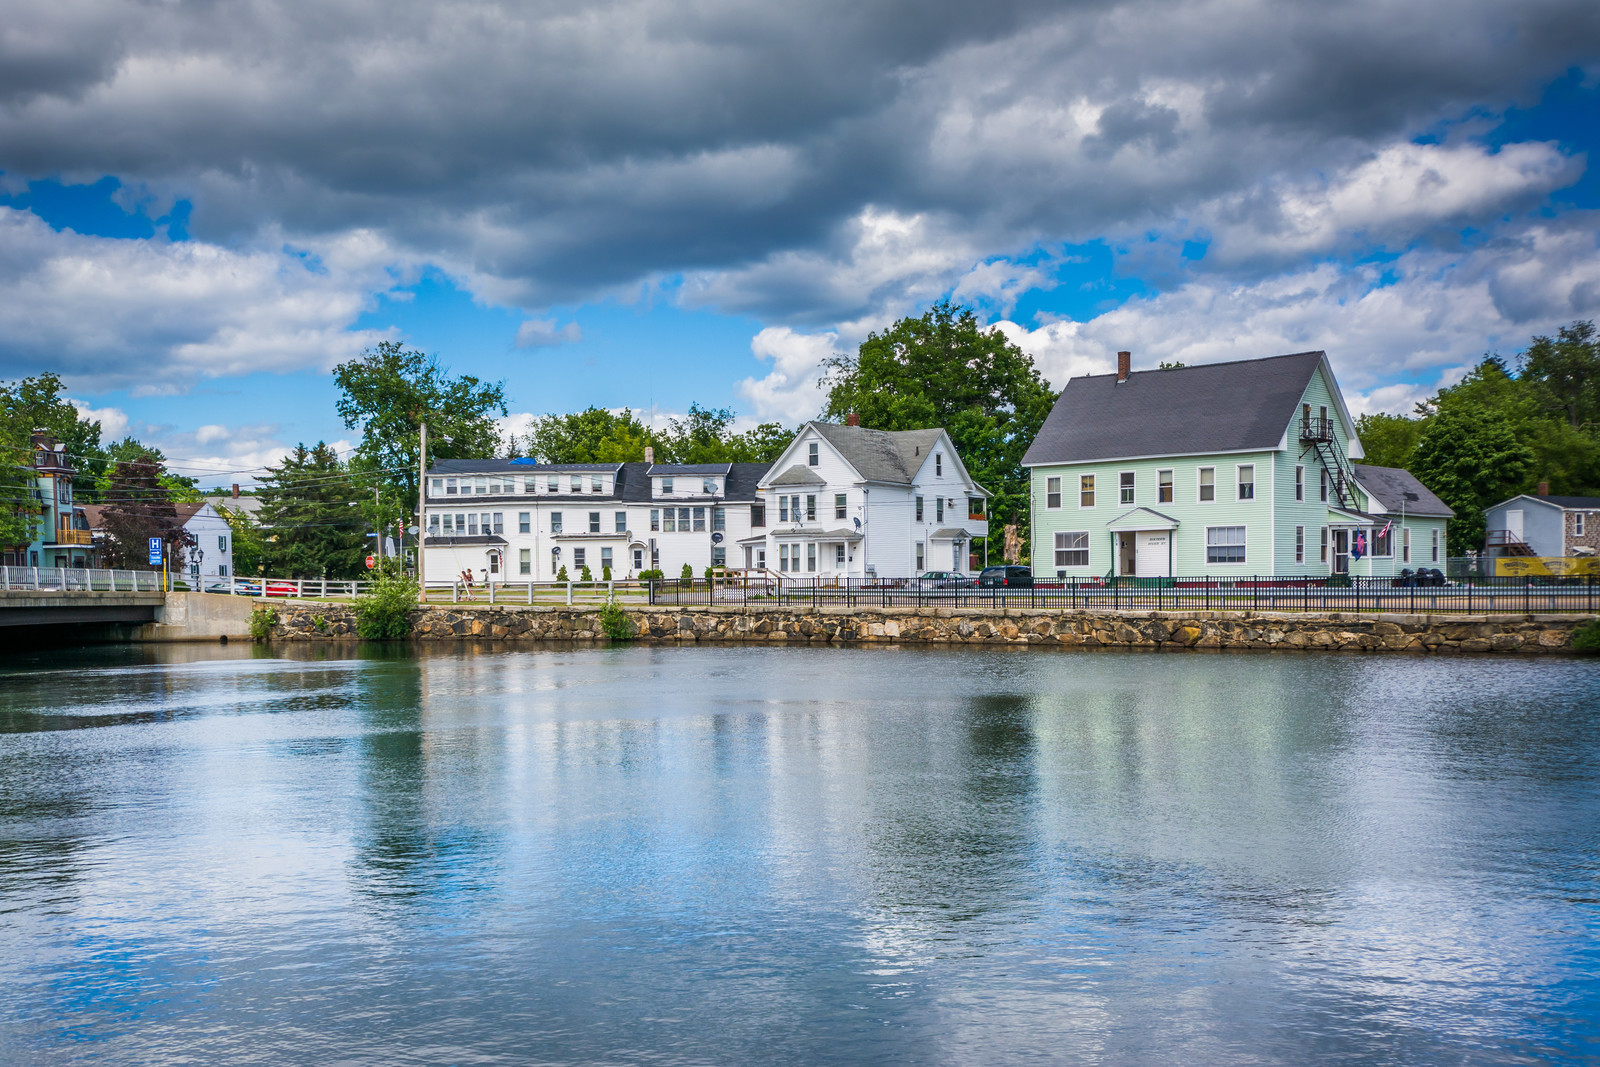 Houses along the Winnipesaukee River, in Laconia, New Hampshire.  Blue skies reflected on the water and on the left of the photo a small bridge